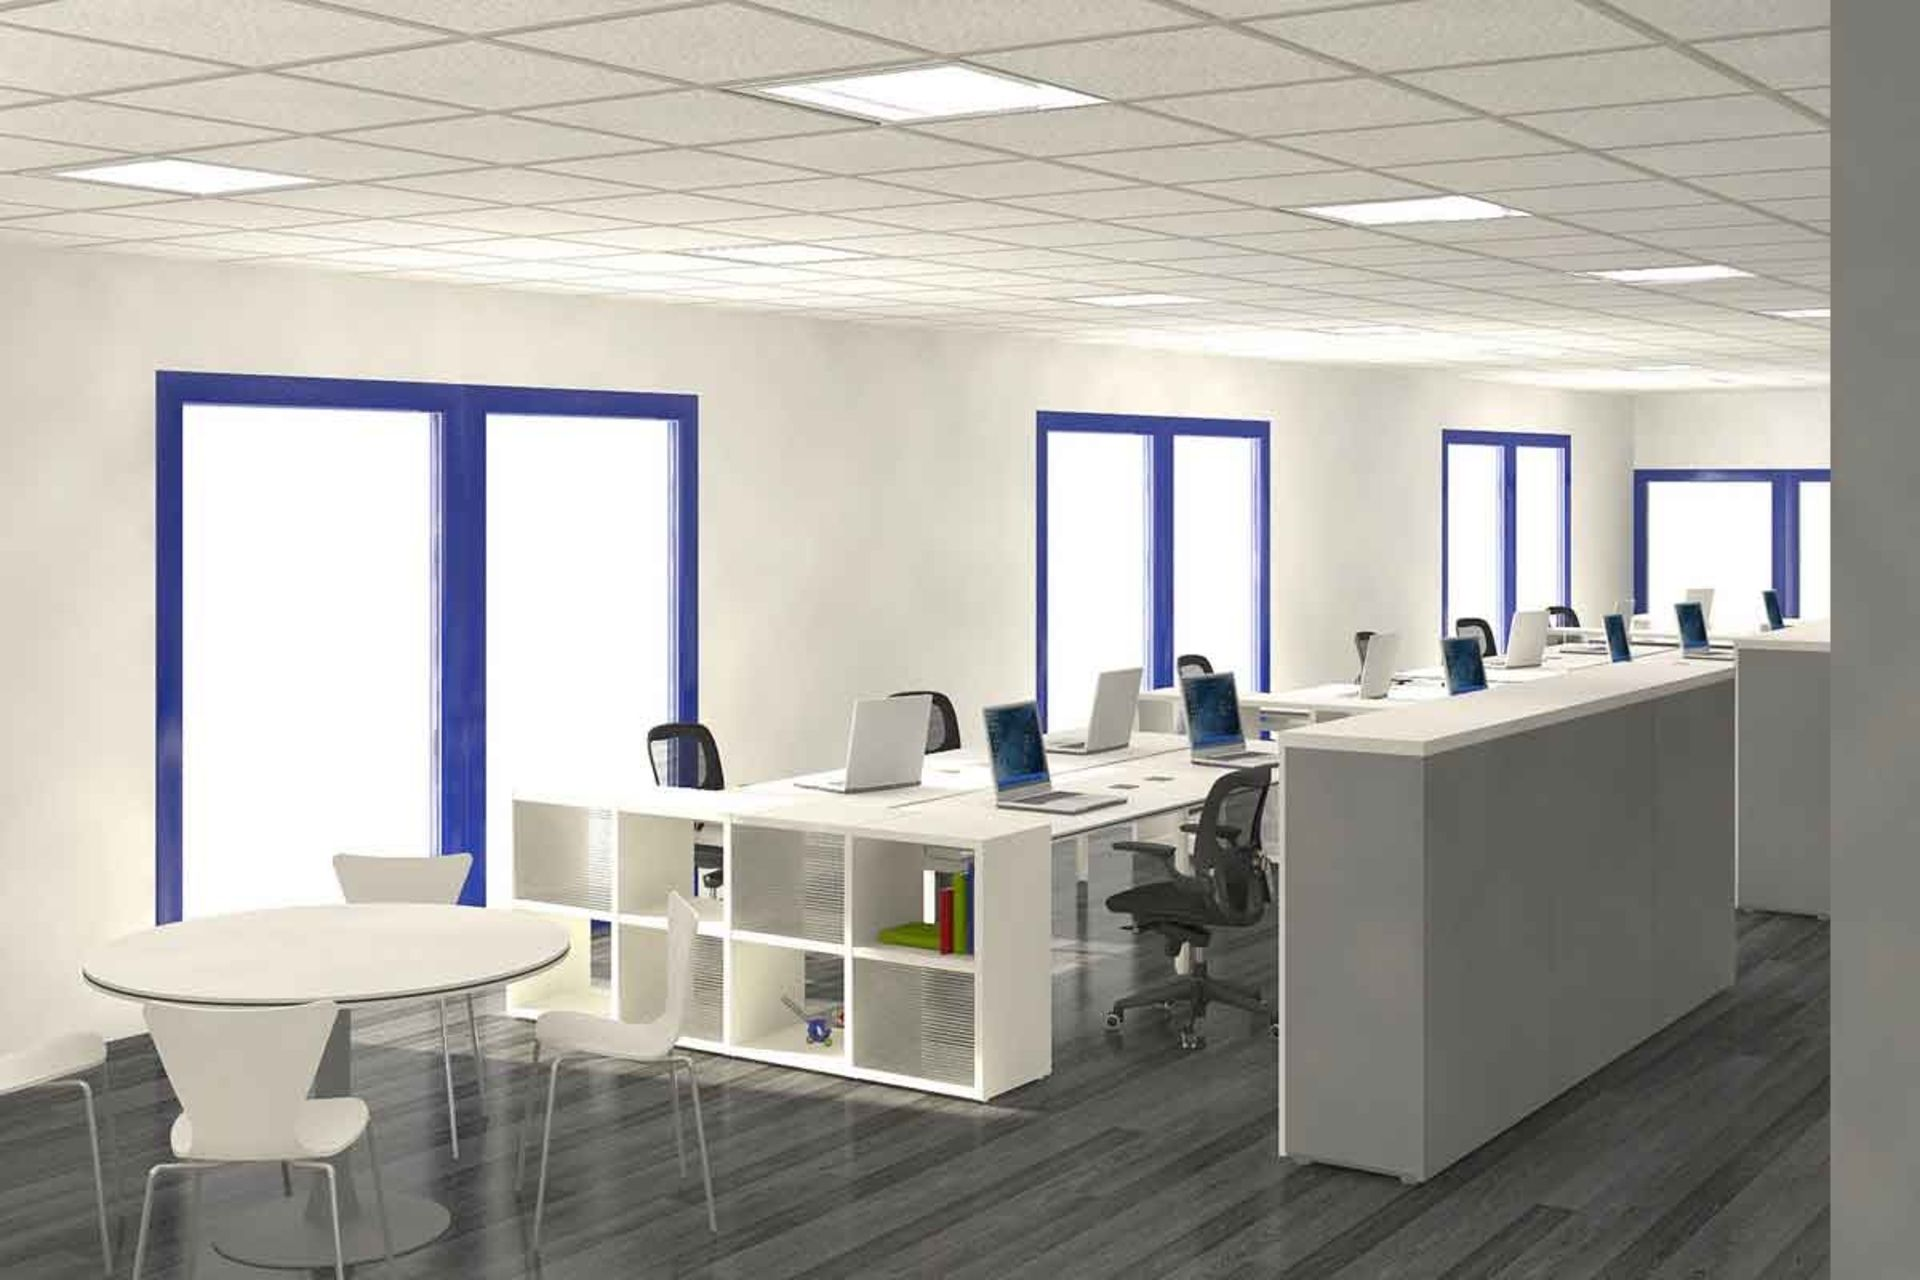 Corporate office decor using ikea furniture google for Corporate office interior design